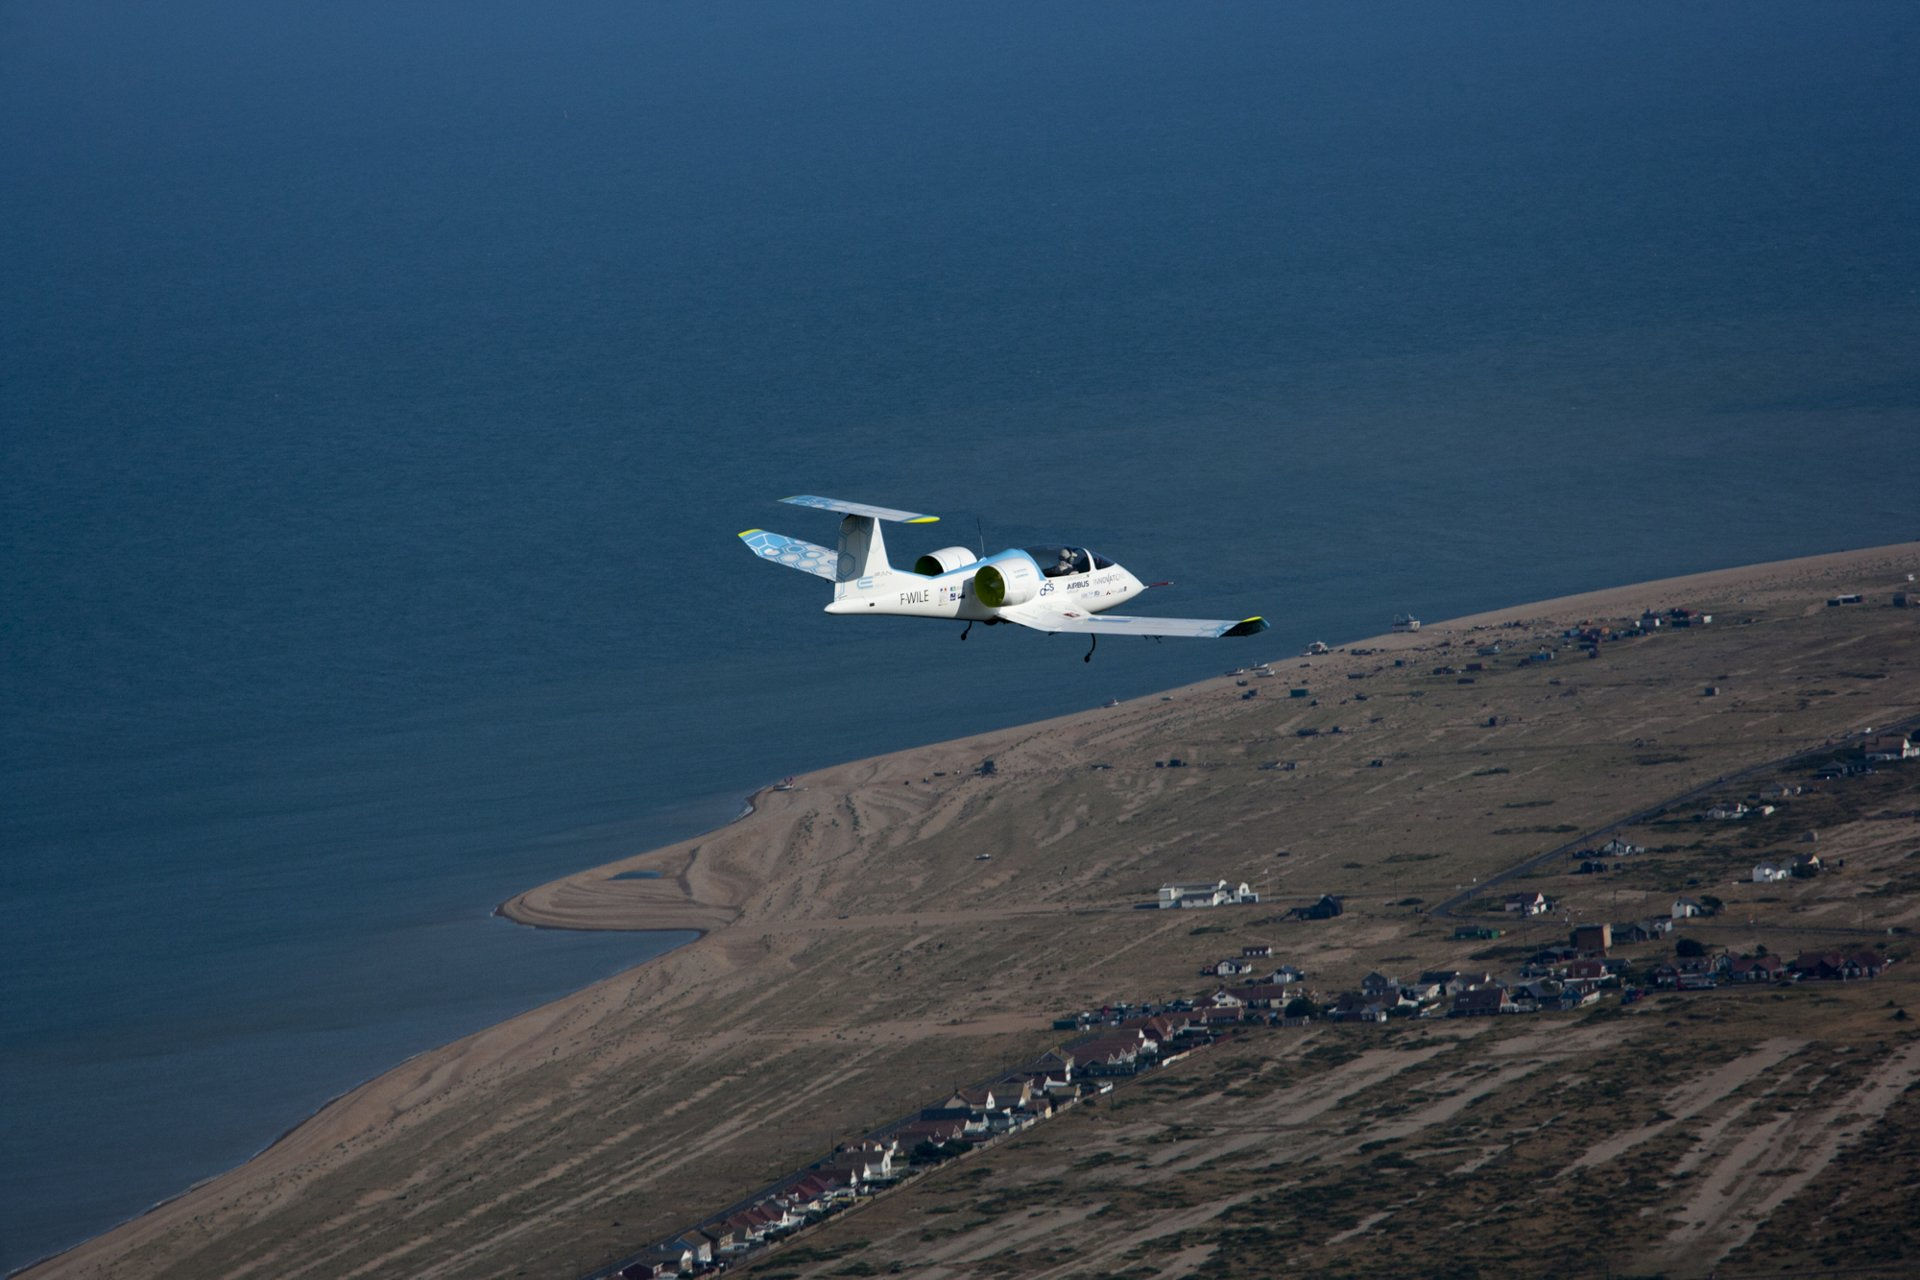 Airbus' E-Fan 1.1 hybrid-electric aircraft successfully flew across the English Channel in 2015.